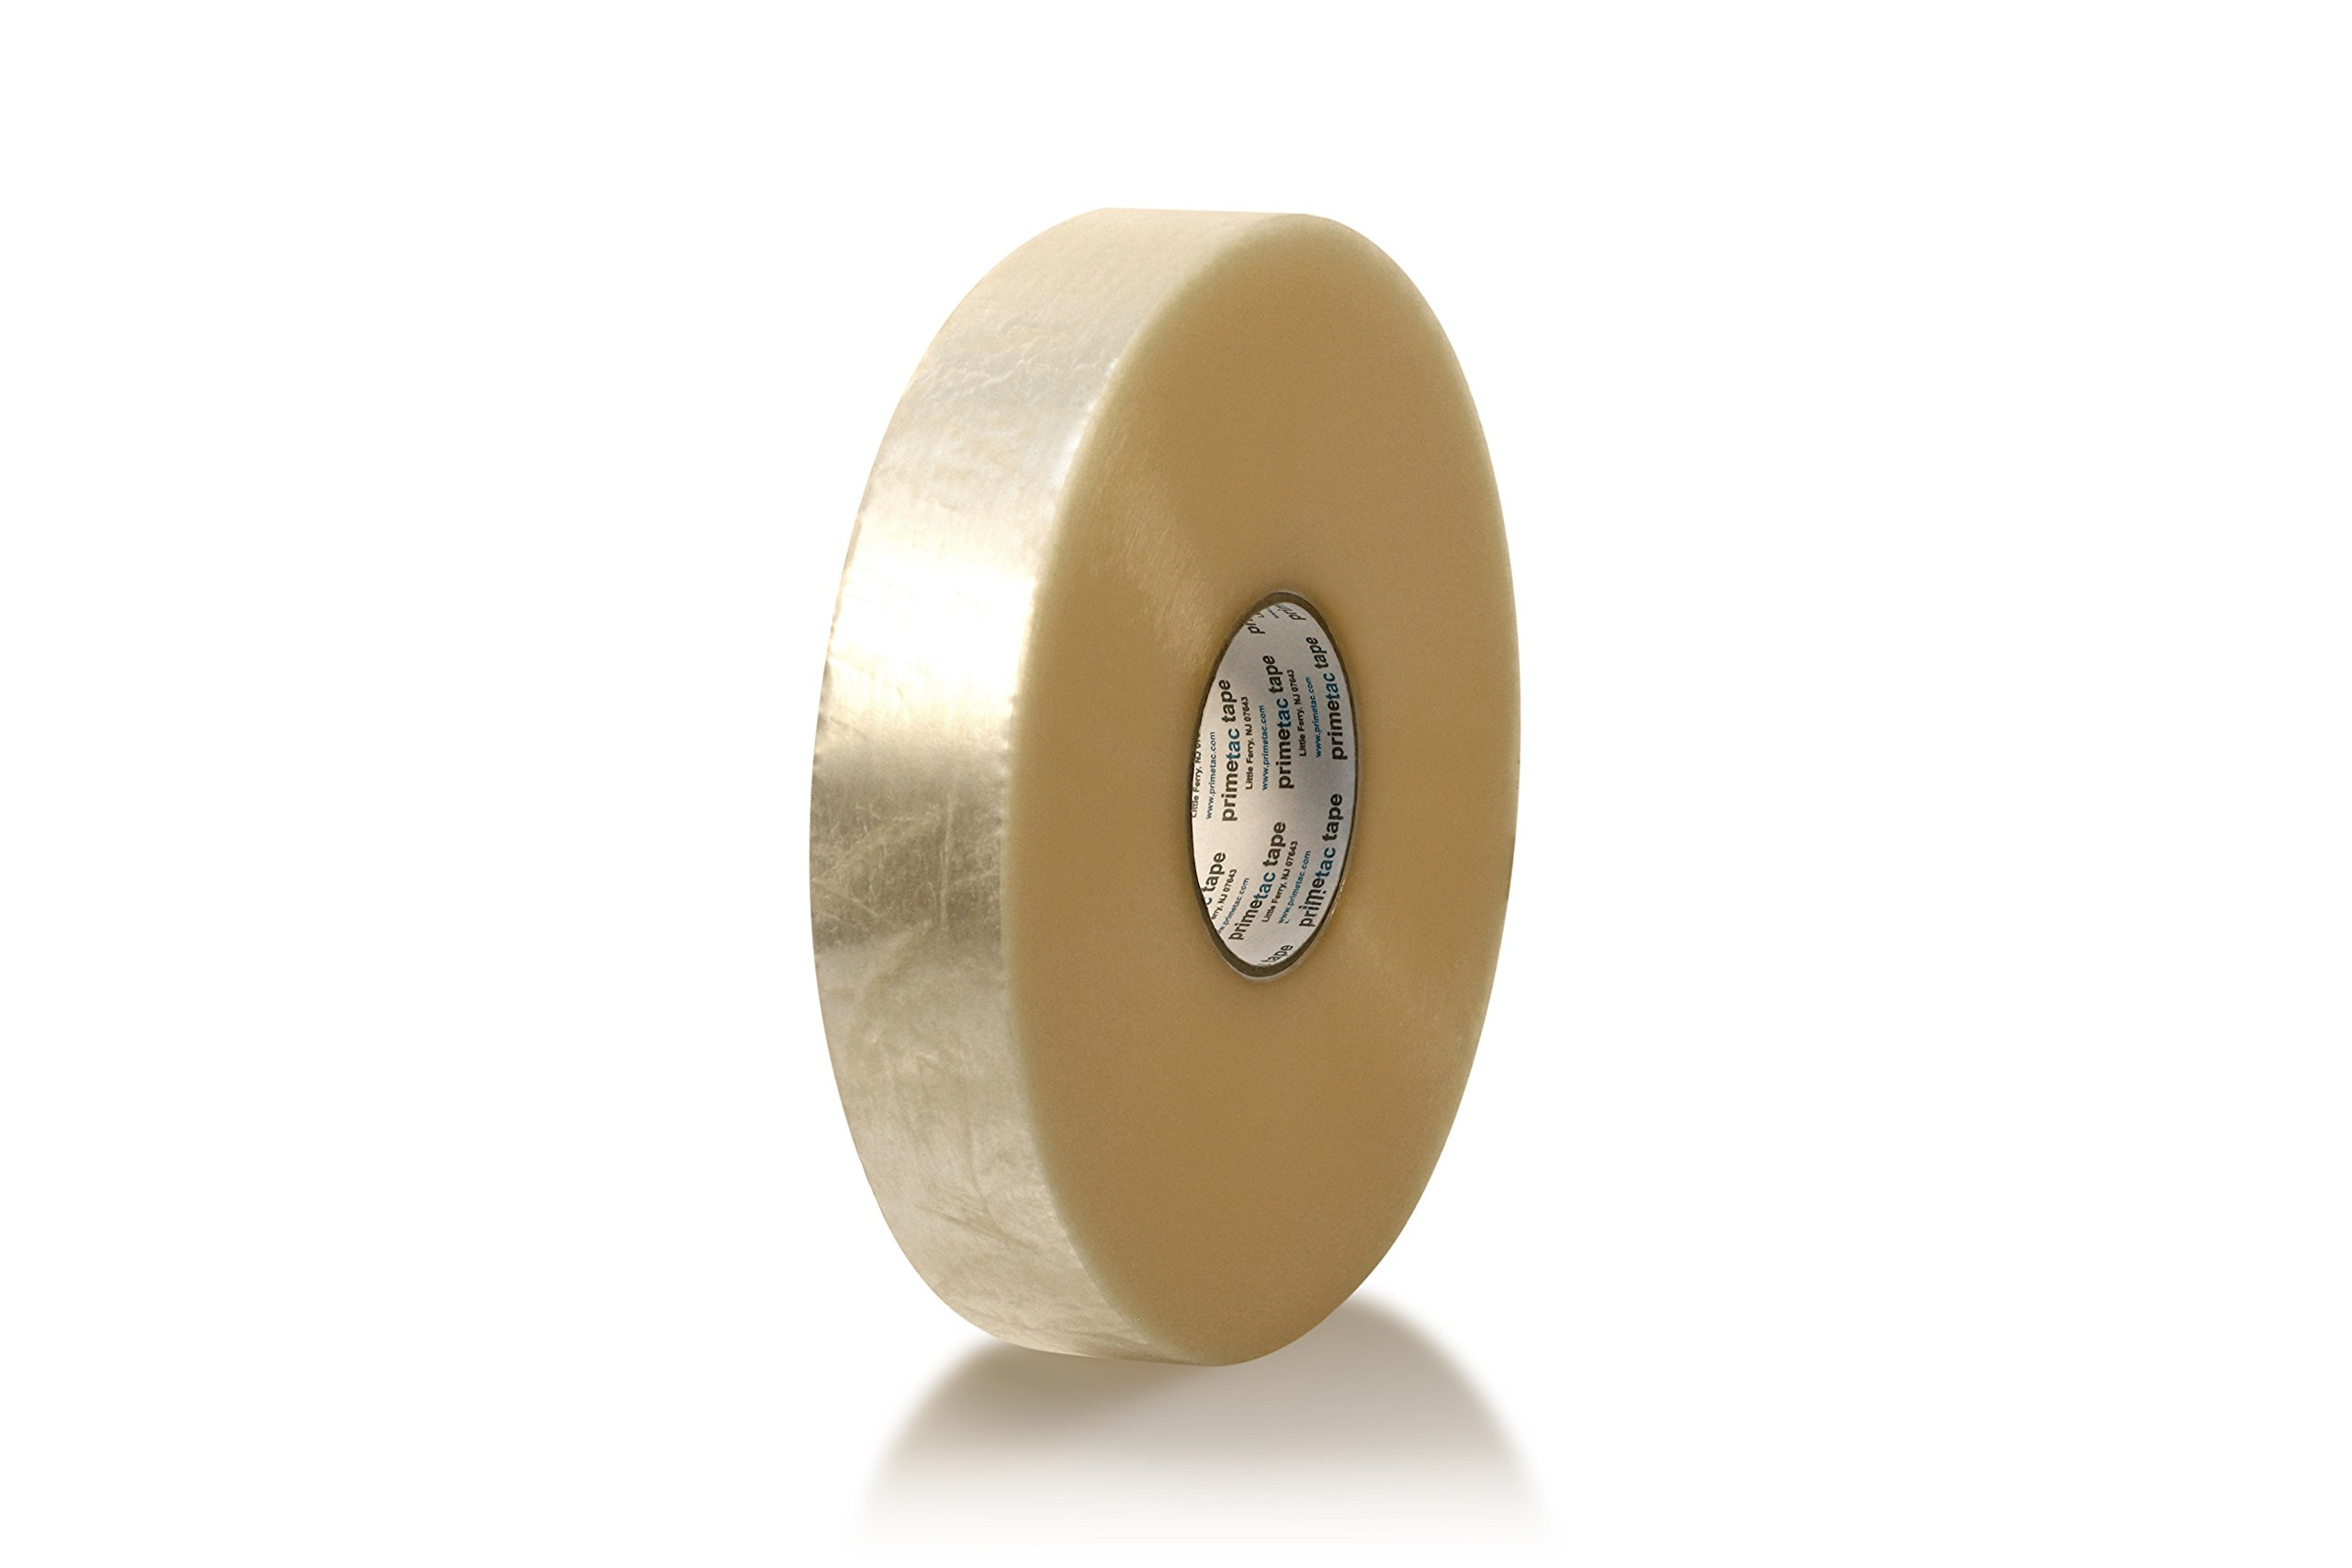 Primetac 640 2x1000 CL Clear Heavy Duty Hot Melt Carton Sealing Tape, 2.4 mil Thickness, 914 m Length, 48 mm Width (Pack of 6 Rolls)